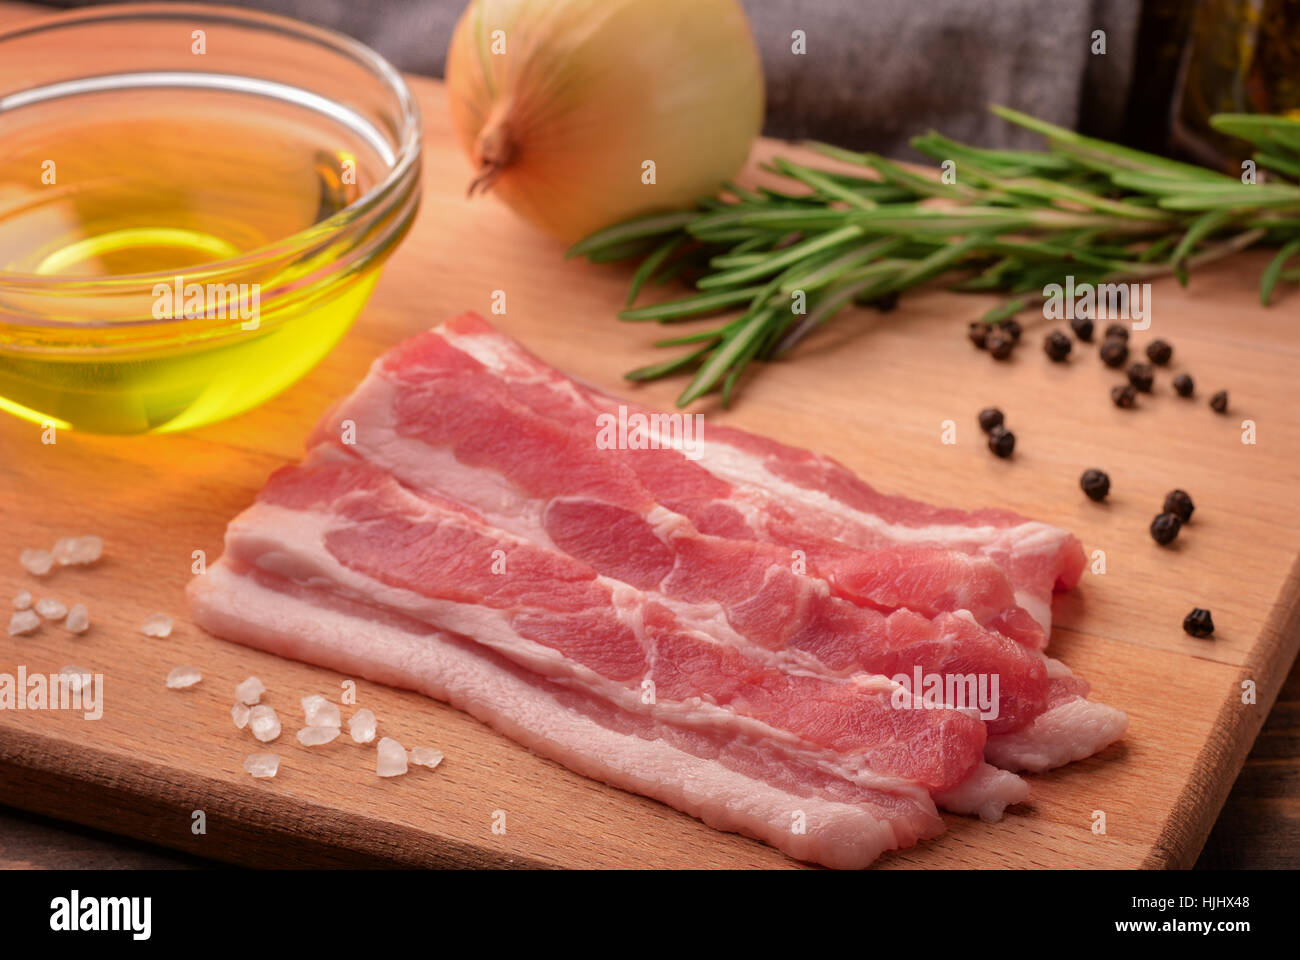 Still life with sliced raw bacon, olive oil, spices and herbs - Stock Image